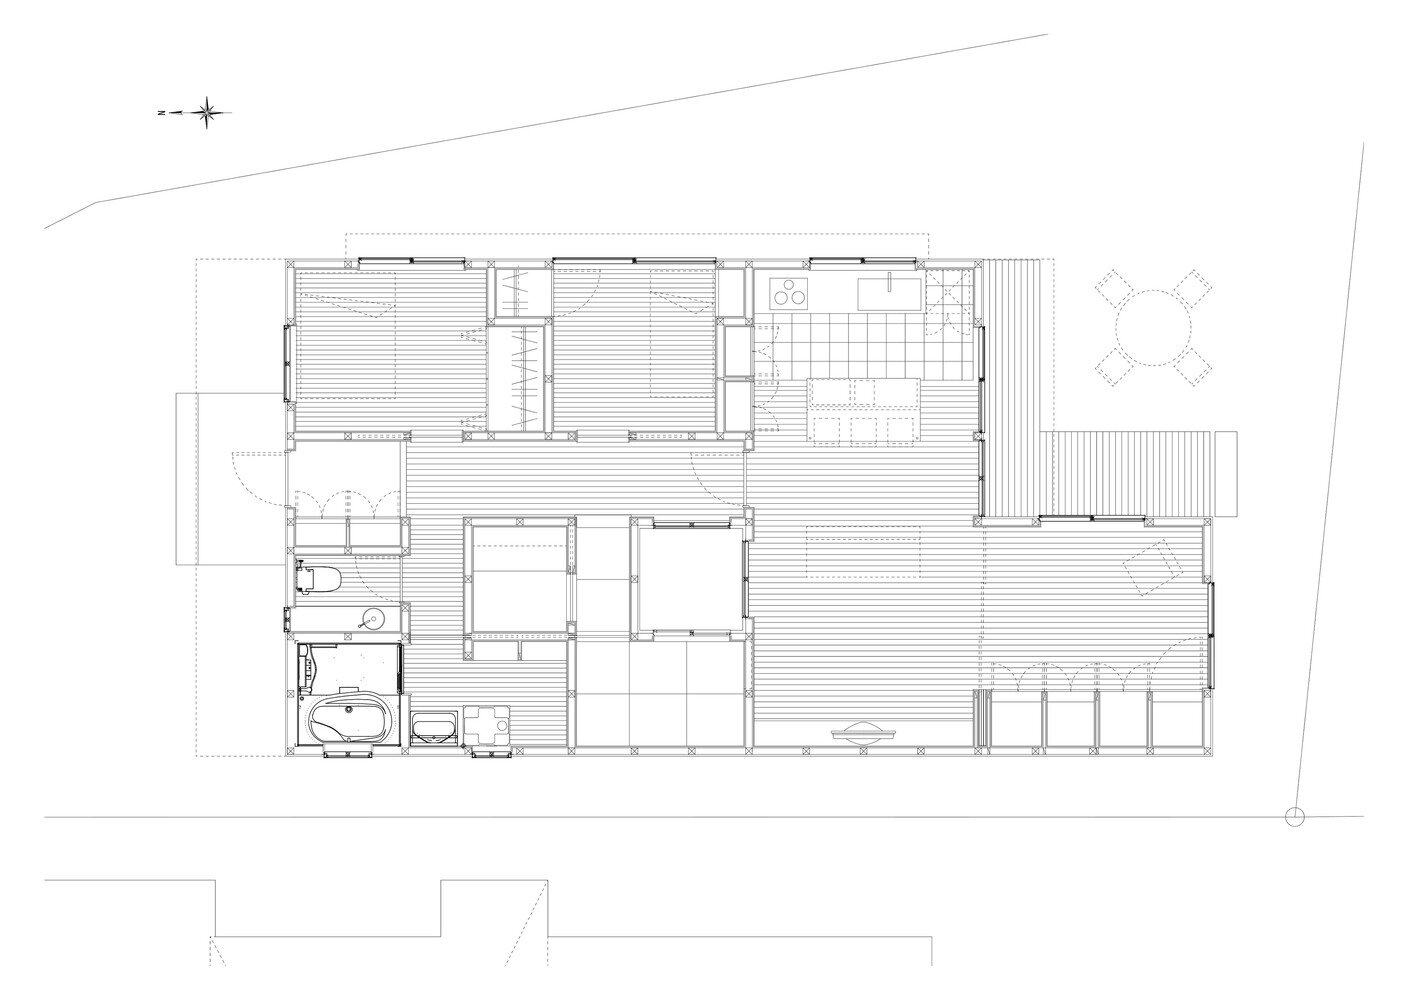 House in Yoshinaga - Tomoyuki Uchida - Japan - Floor Plan - Humble Homes